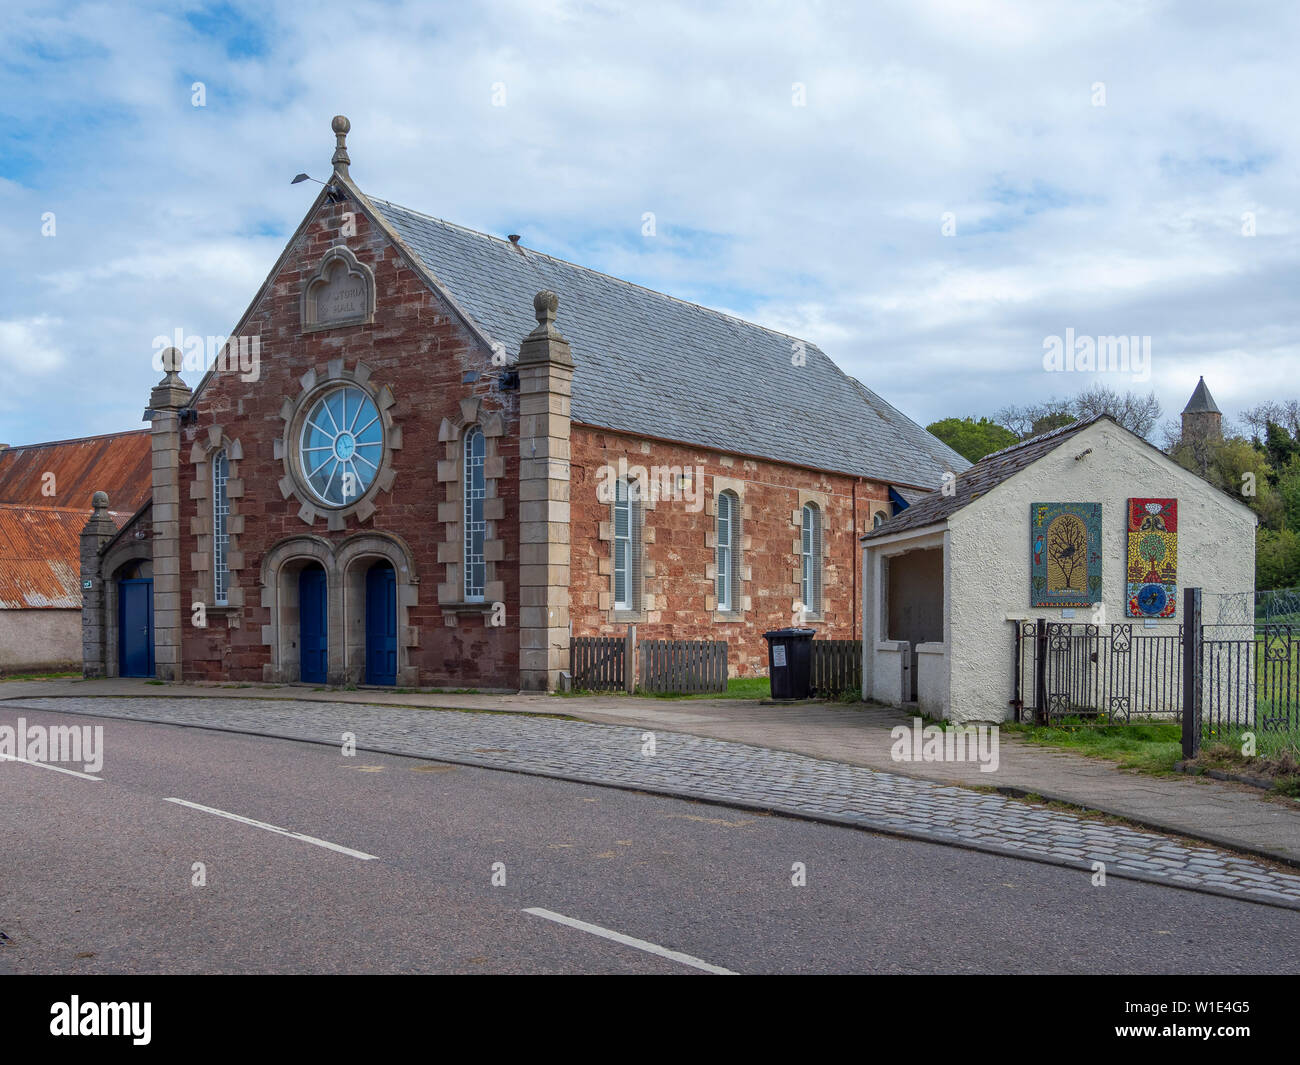 The Victoria Hall, High Street, Cromarty, Black Isle, Scotland. A 19th Century drill hall now used for community events. Stock Photo